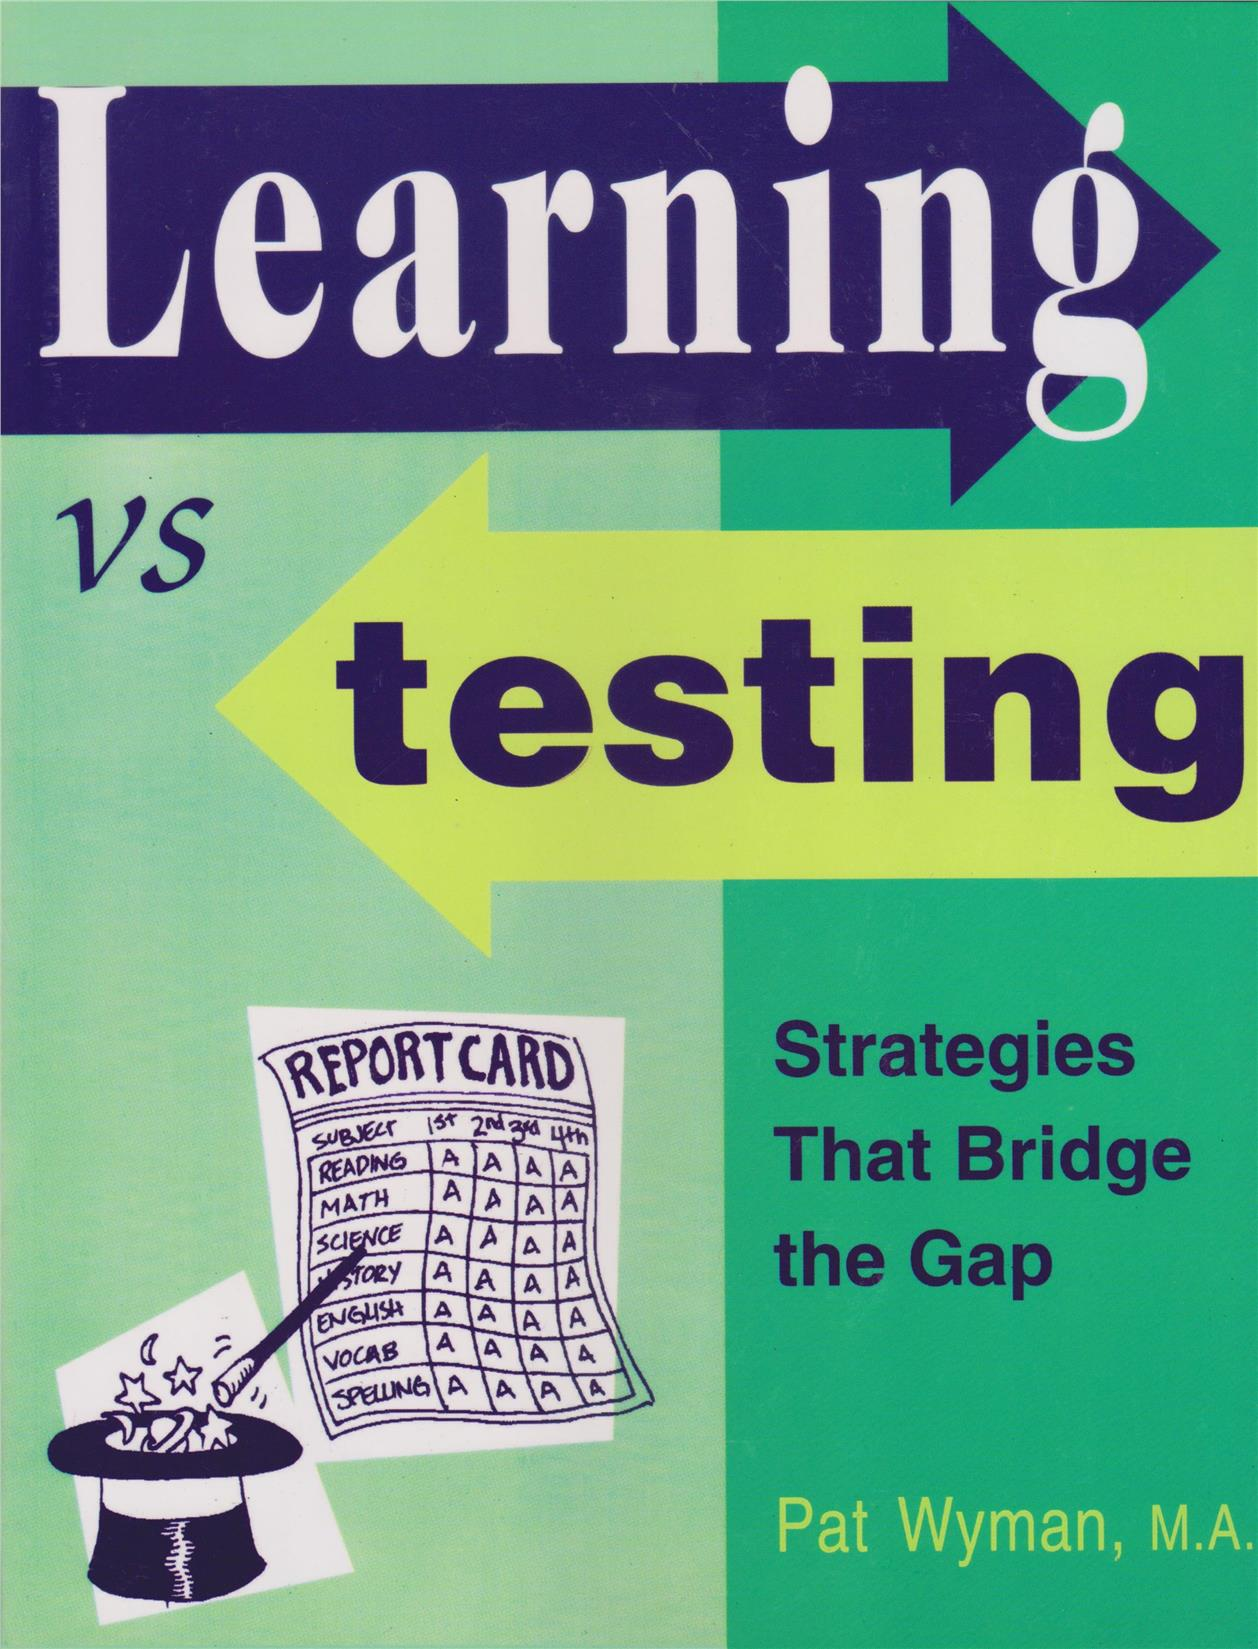 LEARNING vs TESTING